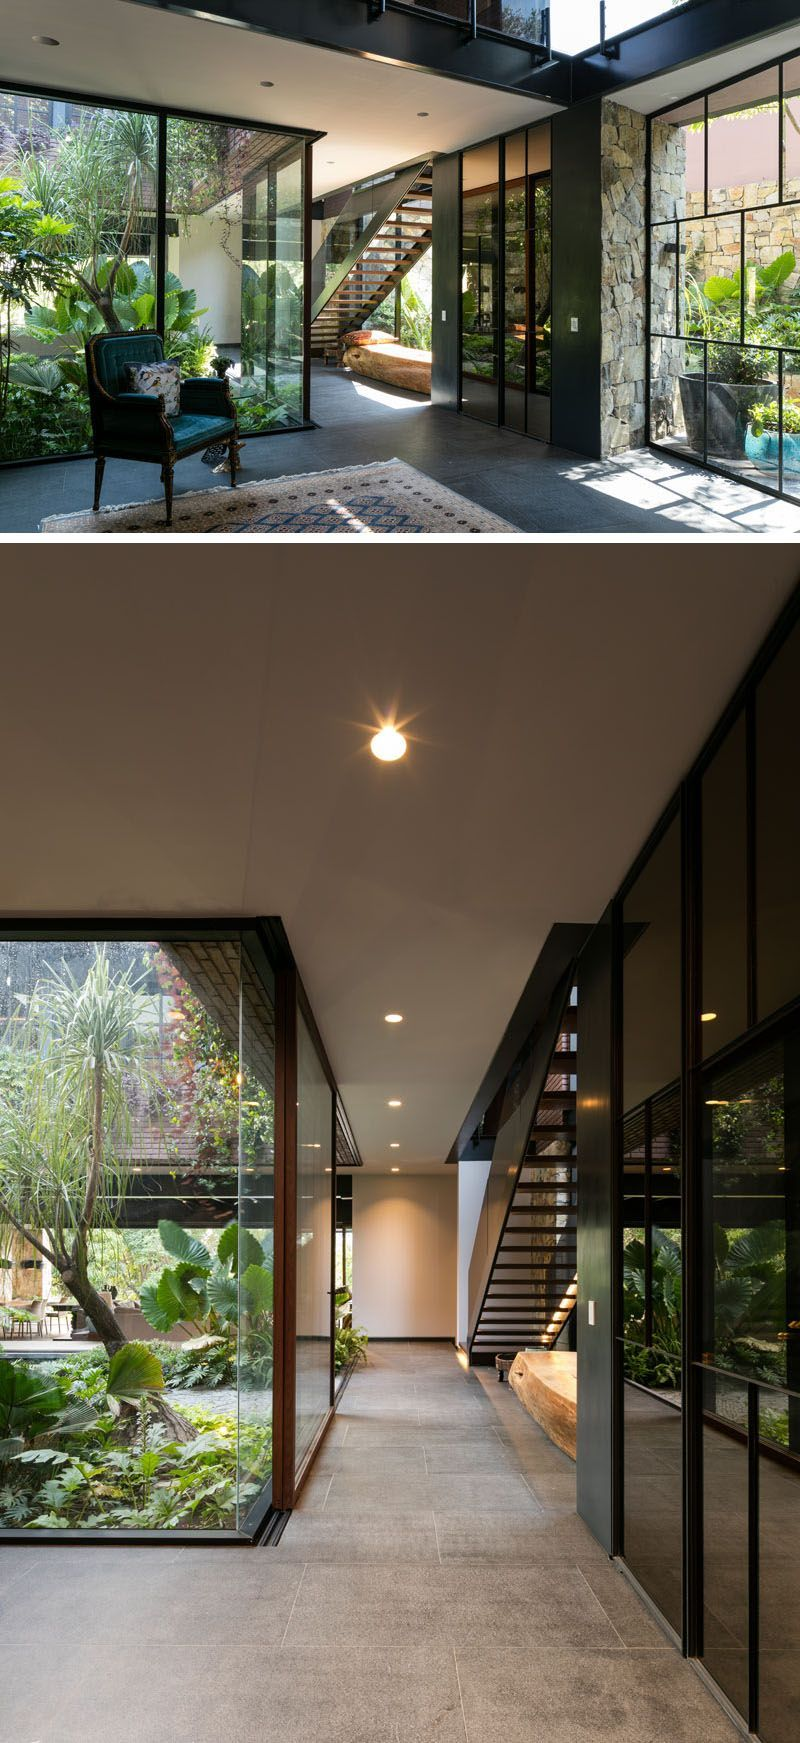 Internal Affairs Interior Designers: This Modern House Has A Glass Wall That Shows Off The